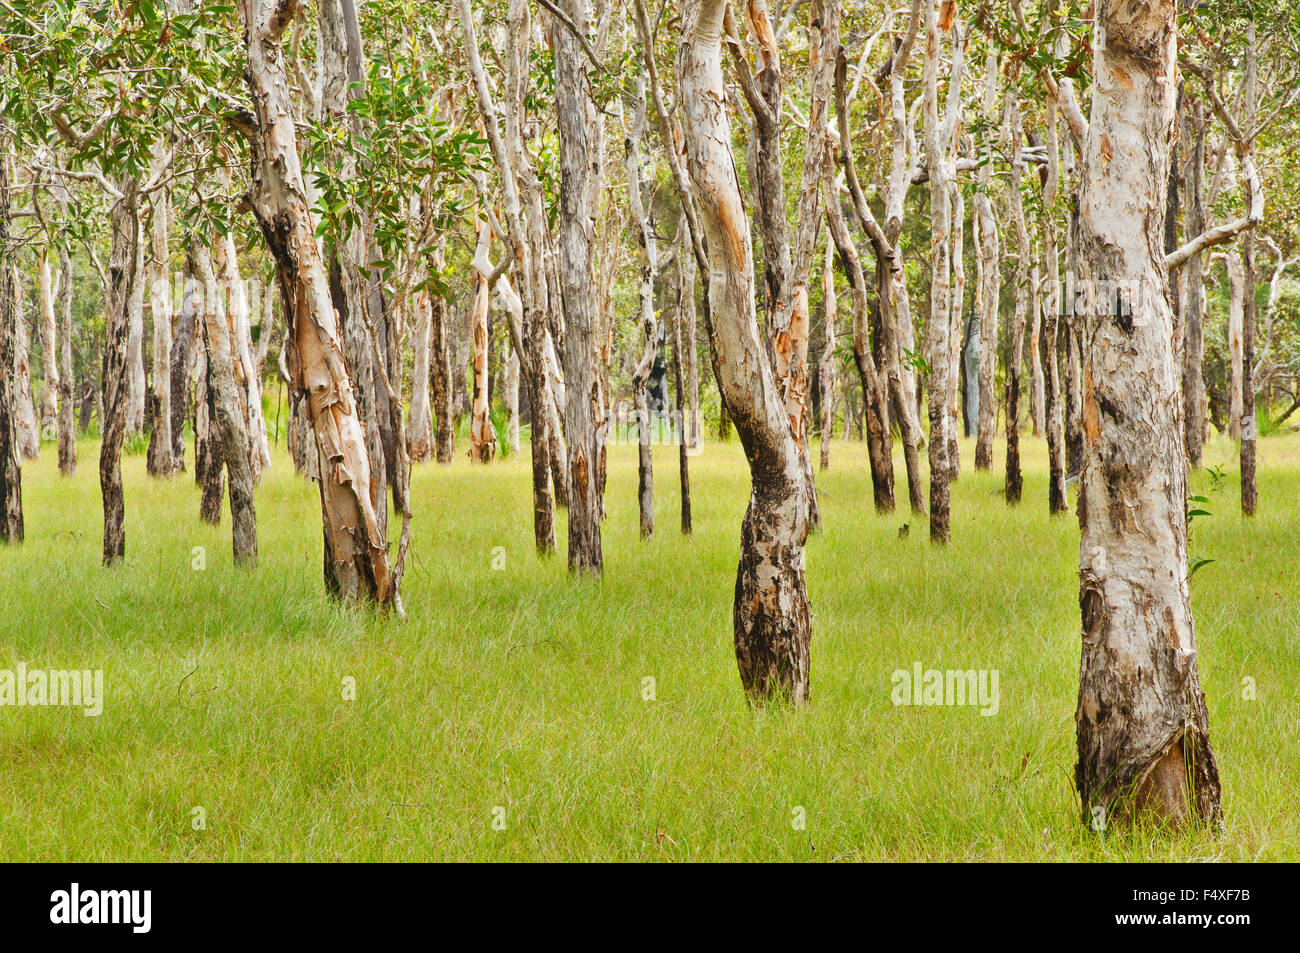 Forest of Paperbark Trees in Queensland. - Stock Image